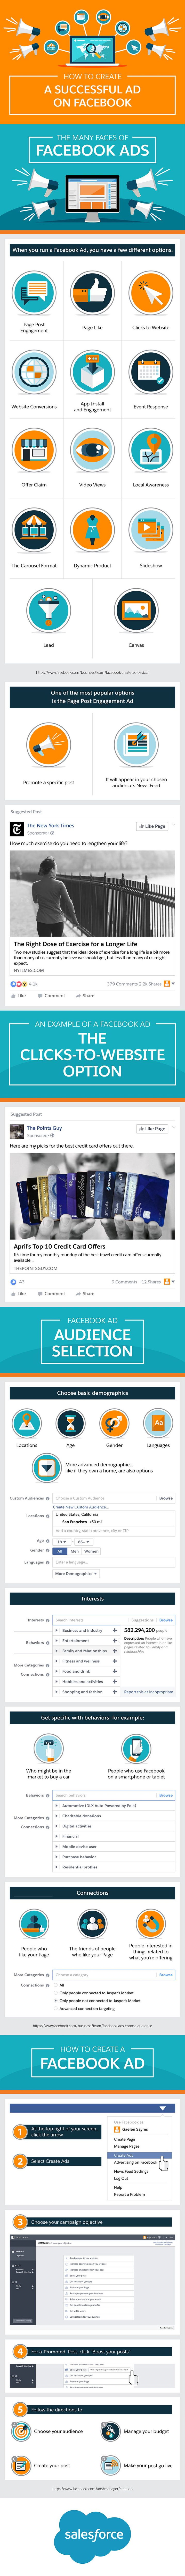 How to Create a Successful Ad on Facebook [Infographic] | Social Media Today